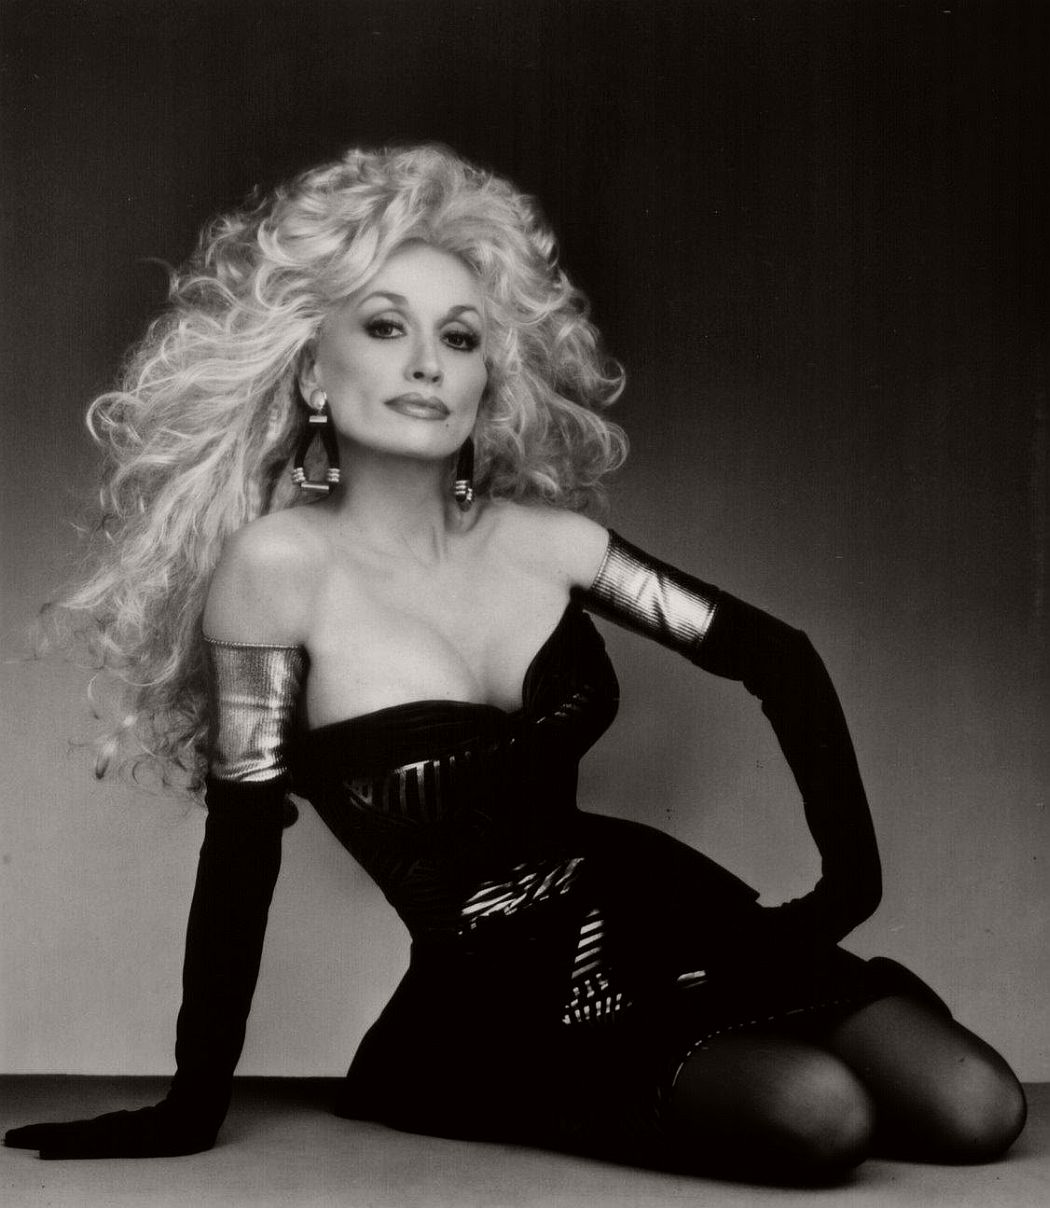 dolly-parton-in-the-1970s-vintage-portraits-03